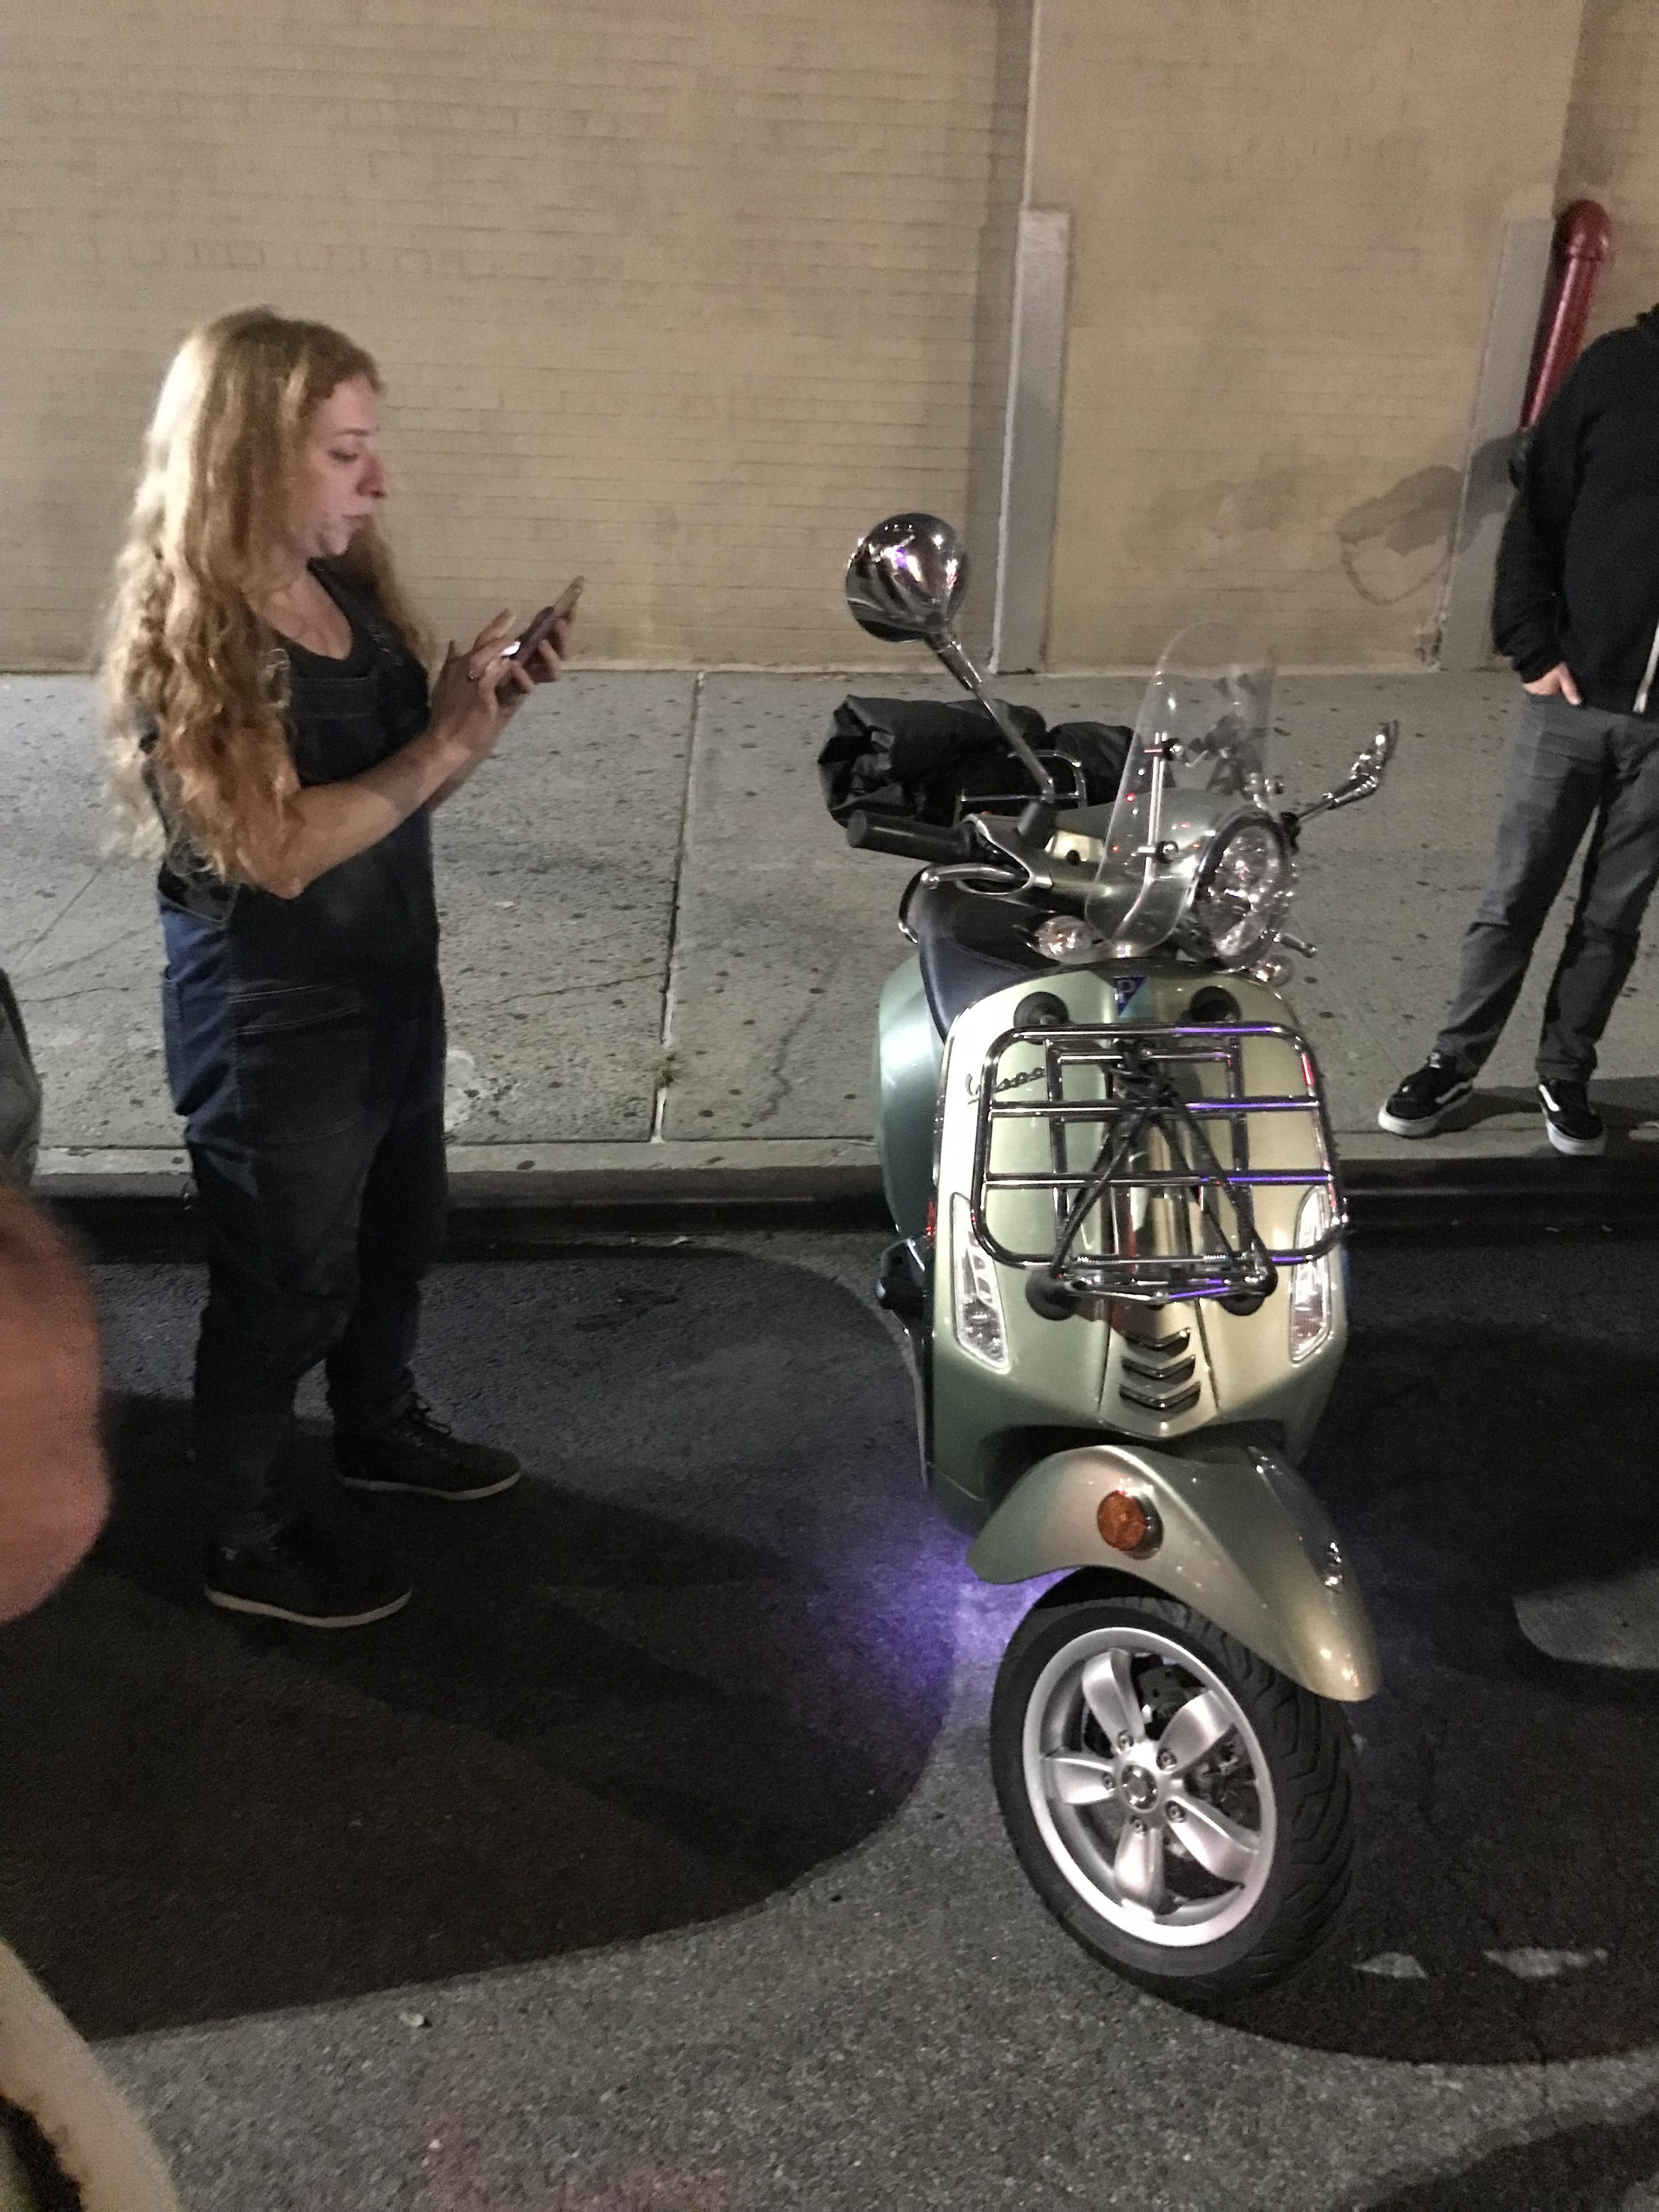 Becky shows her Vespa unlit project